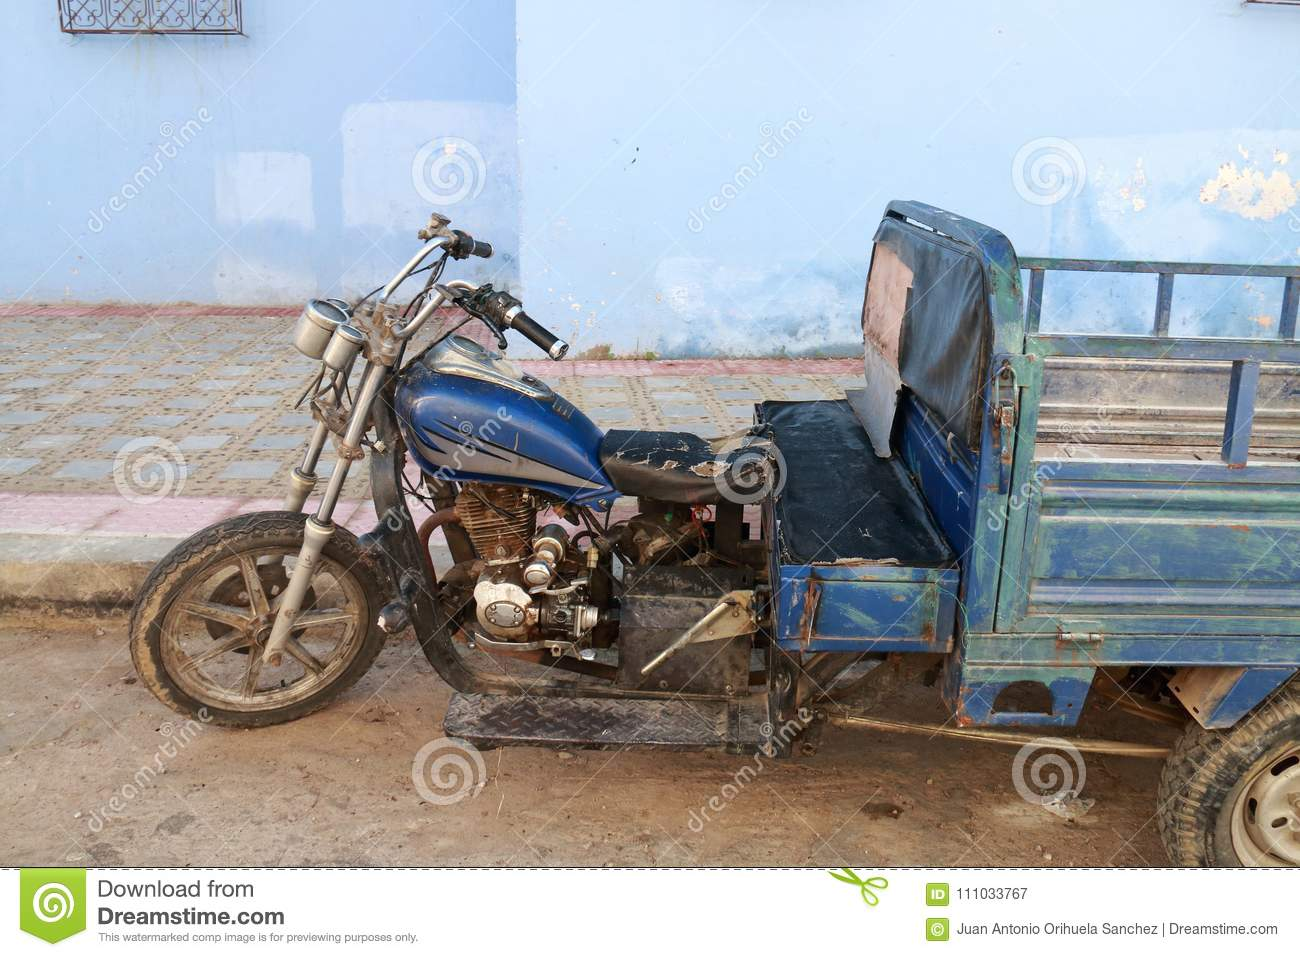 funny old motorcycle pictures  Funny old motorcycle stock image. Image of antique, street - 111033767